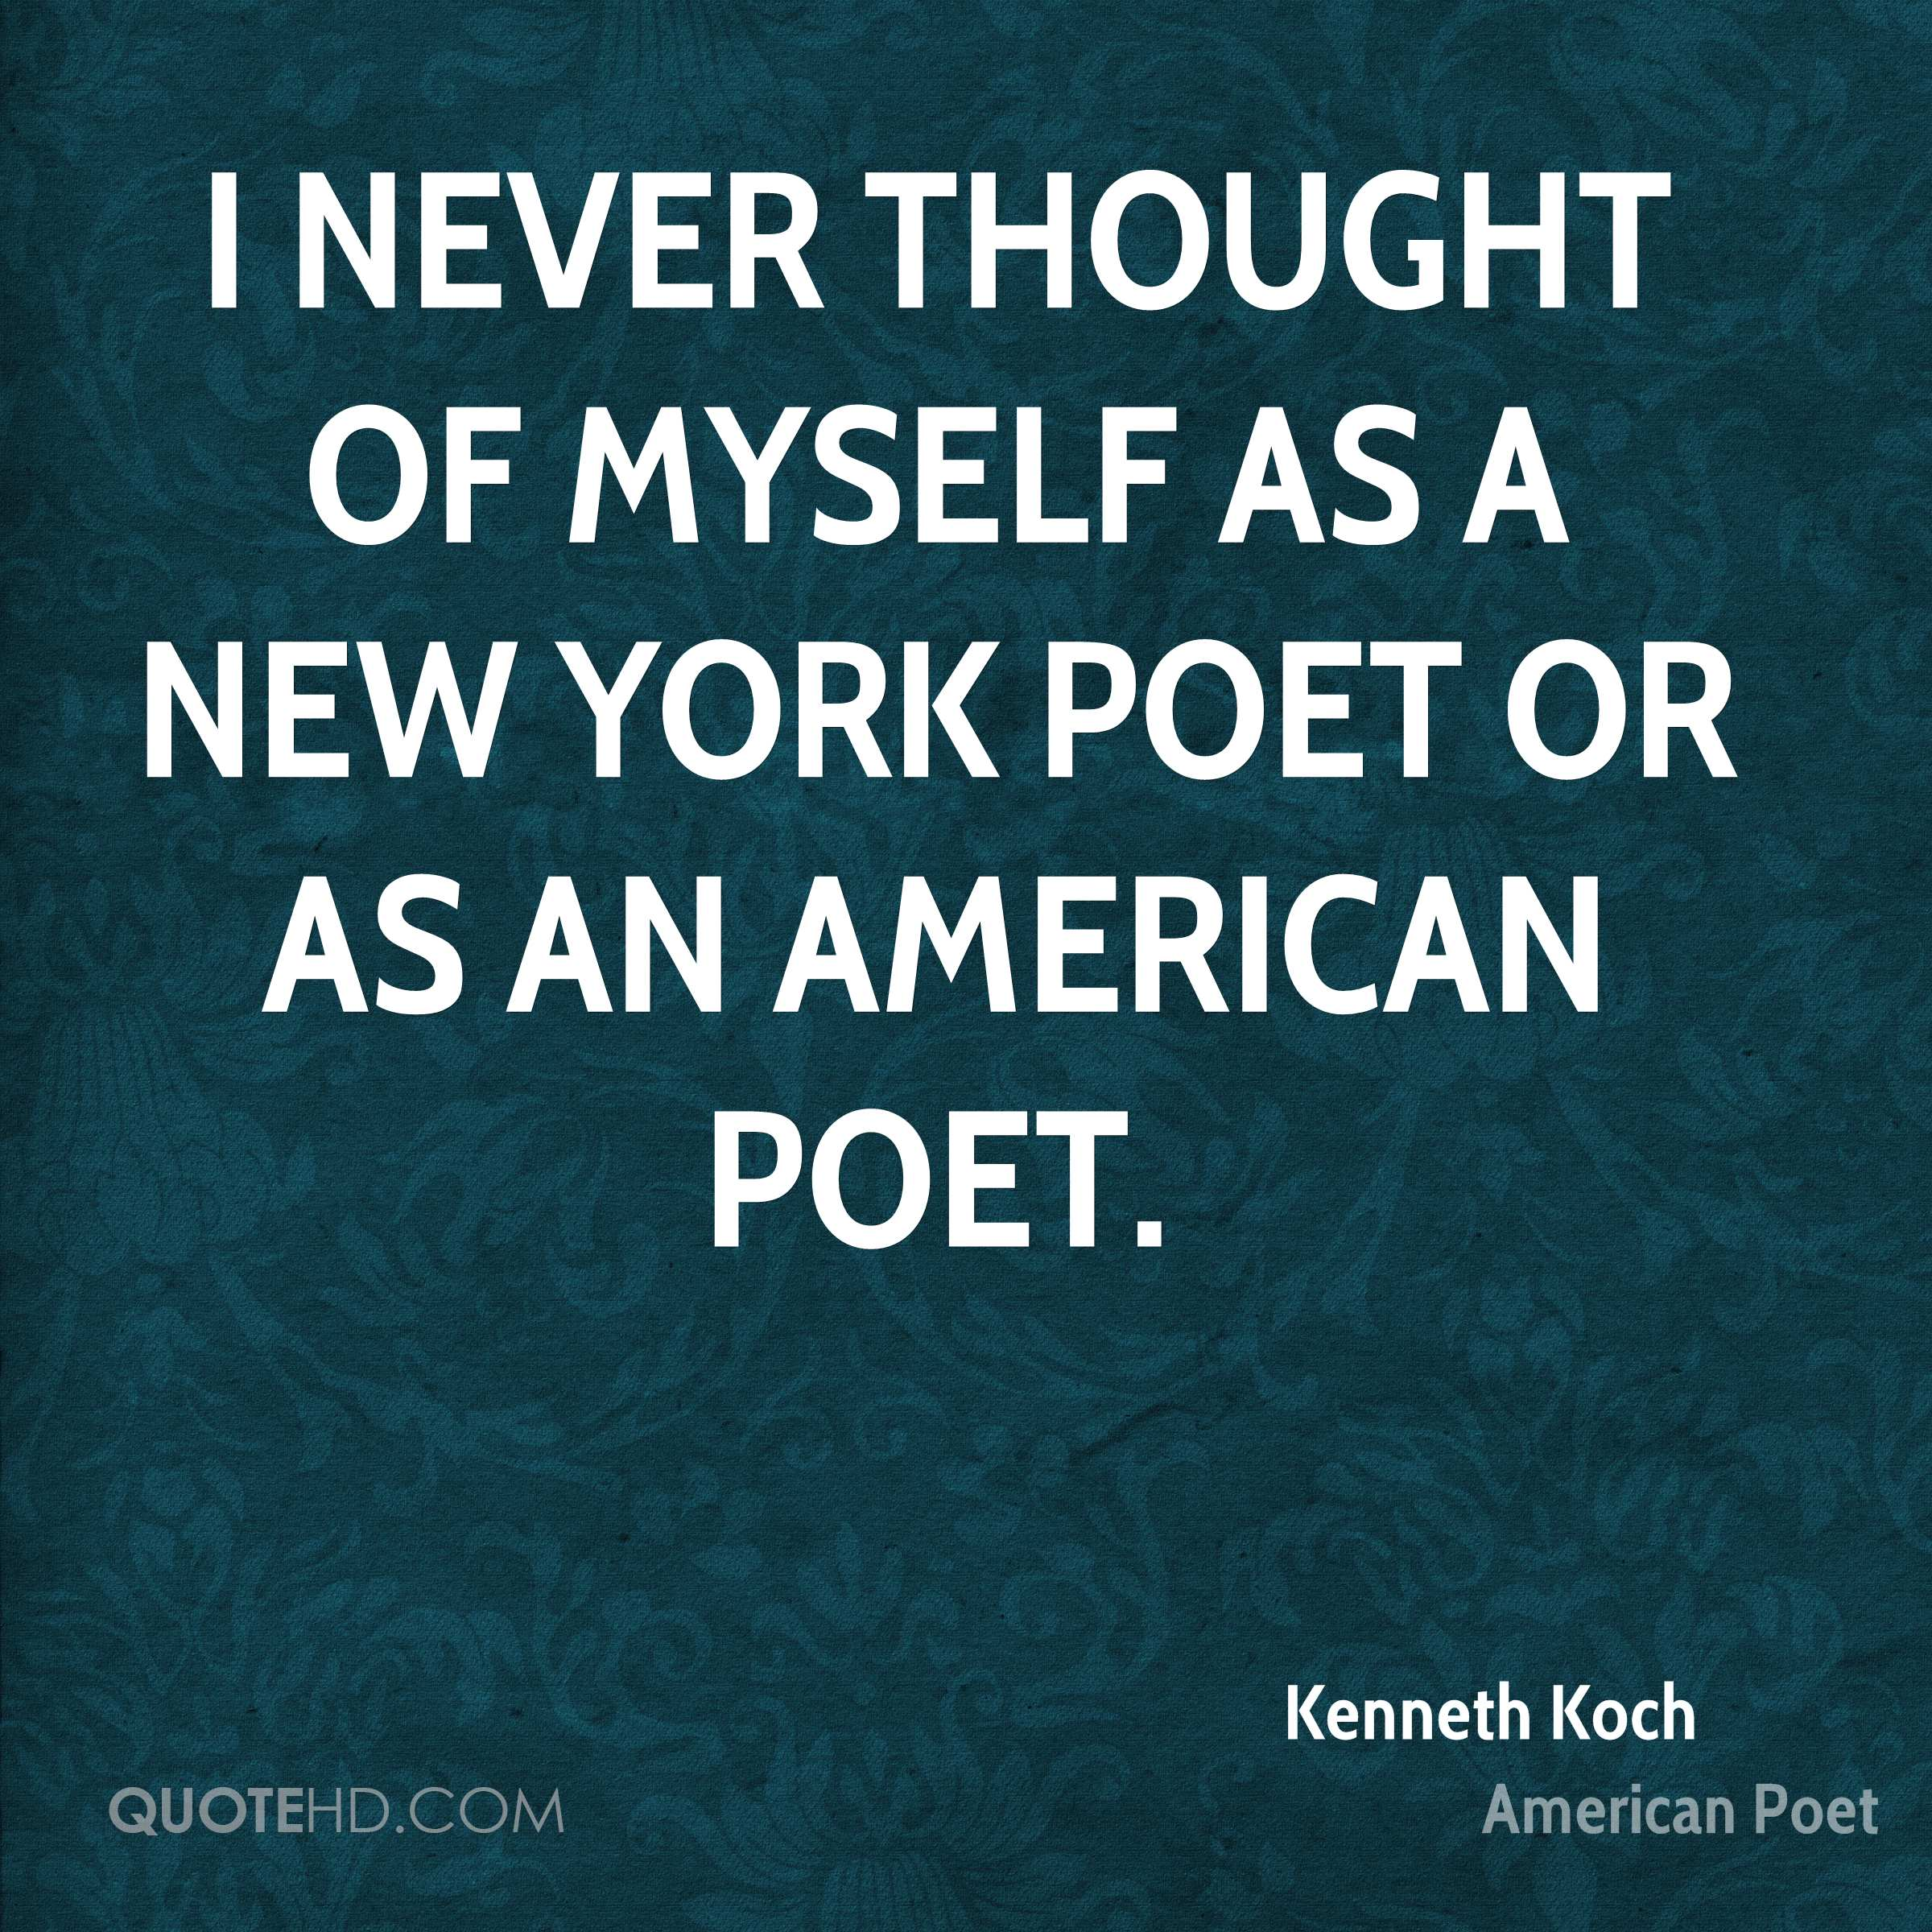 I never thought of myself as a New York poet or as an American poet.